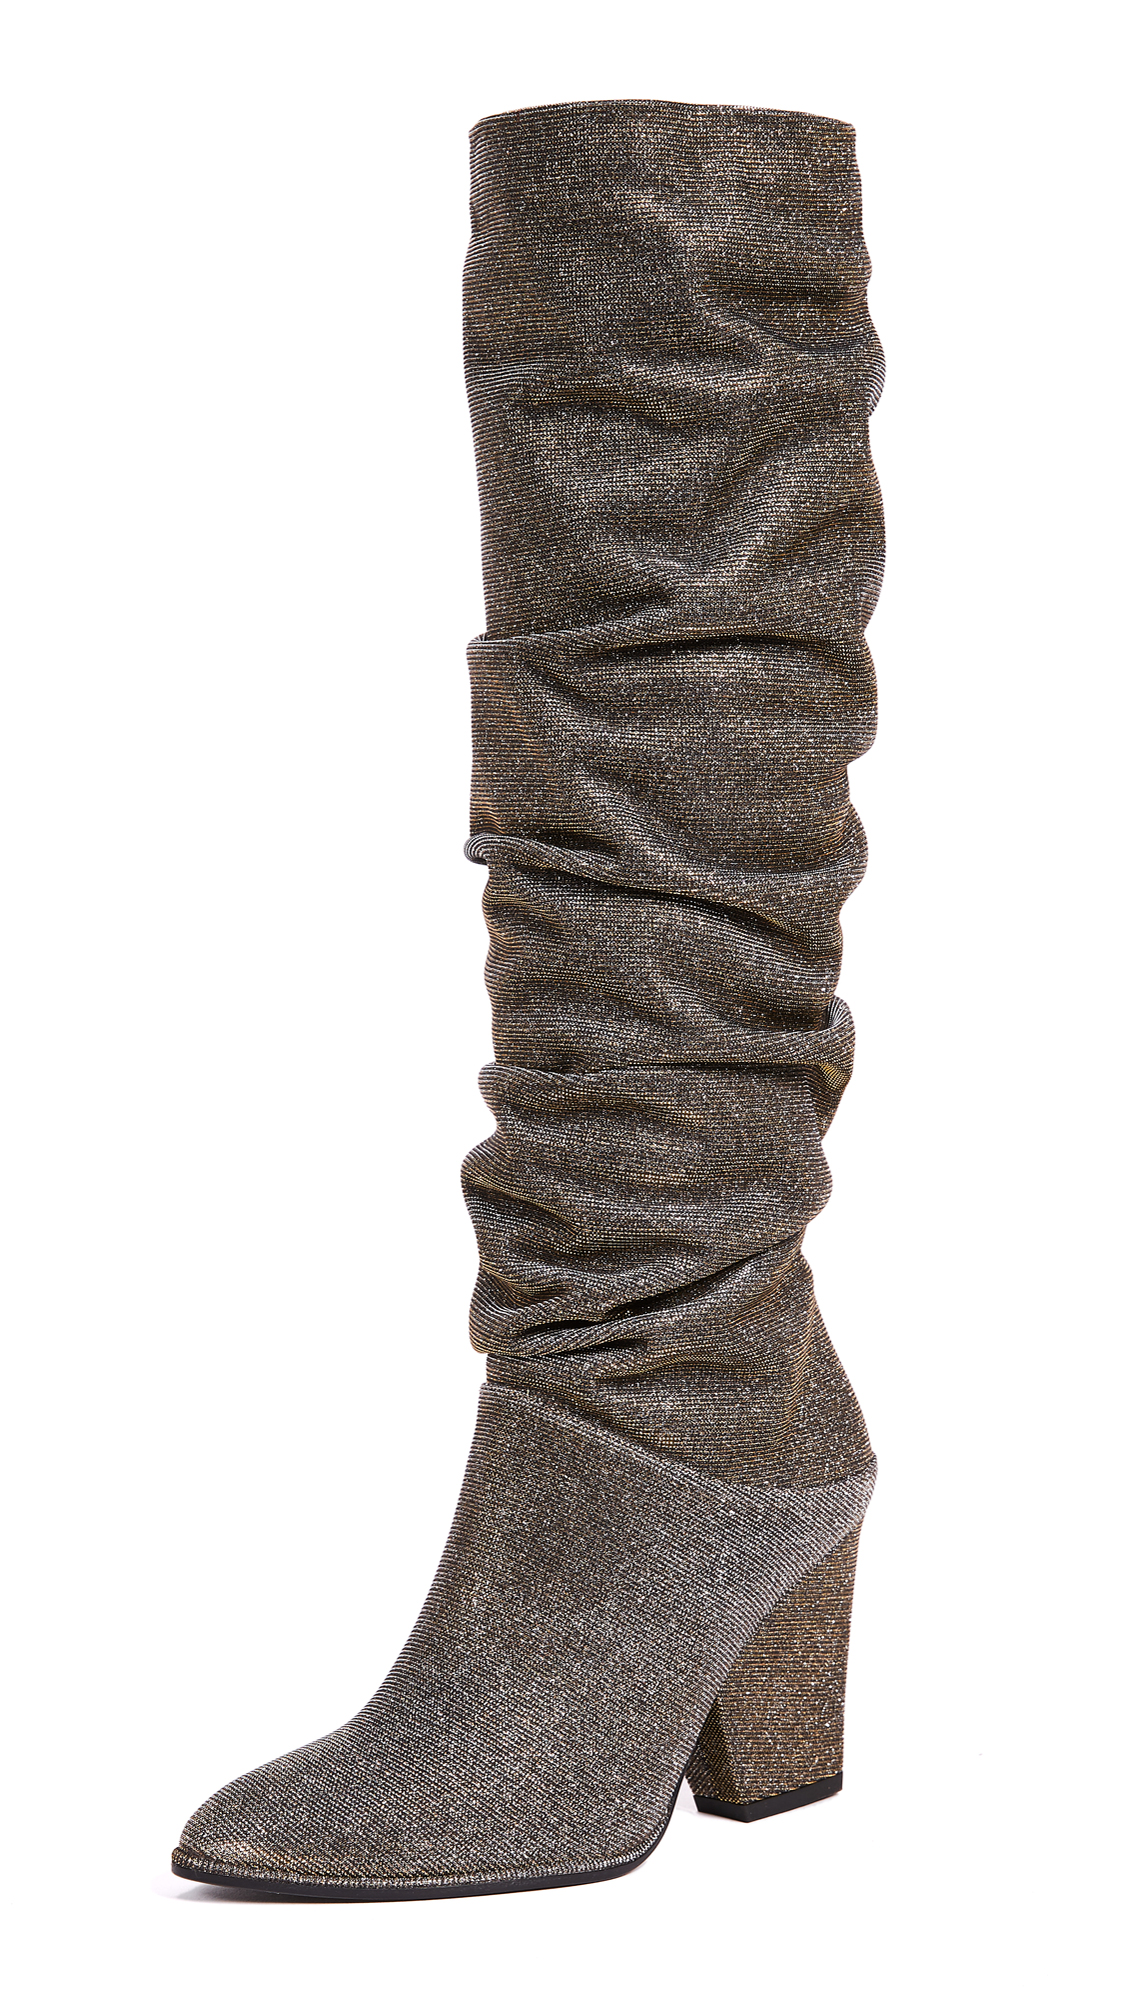 Stuart Weitzman Smashing Knee High Boots - Pyrite